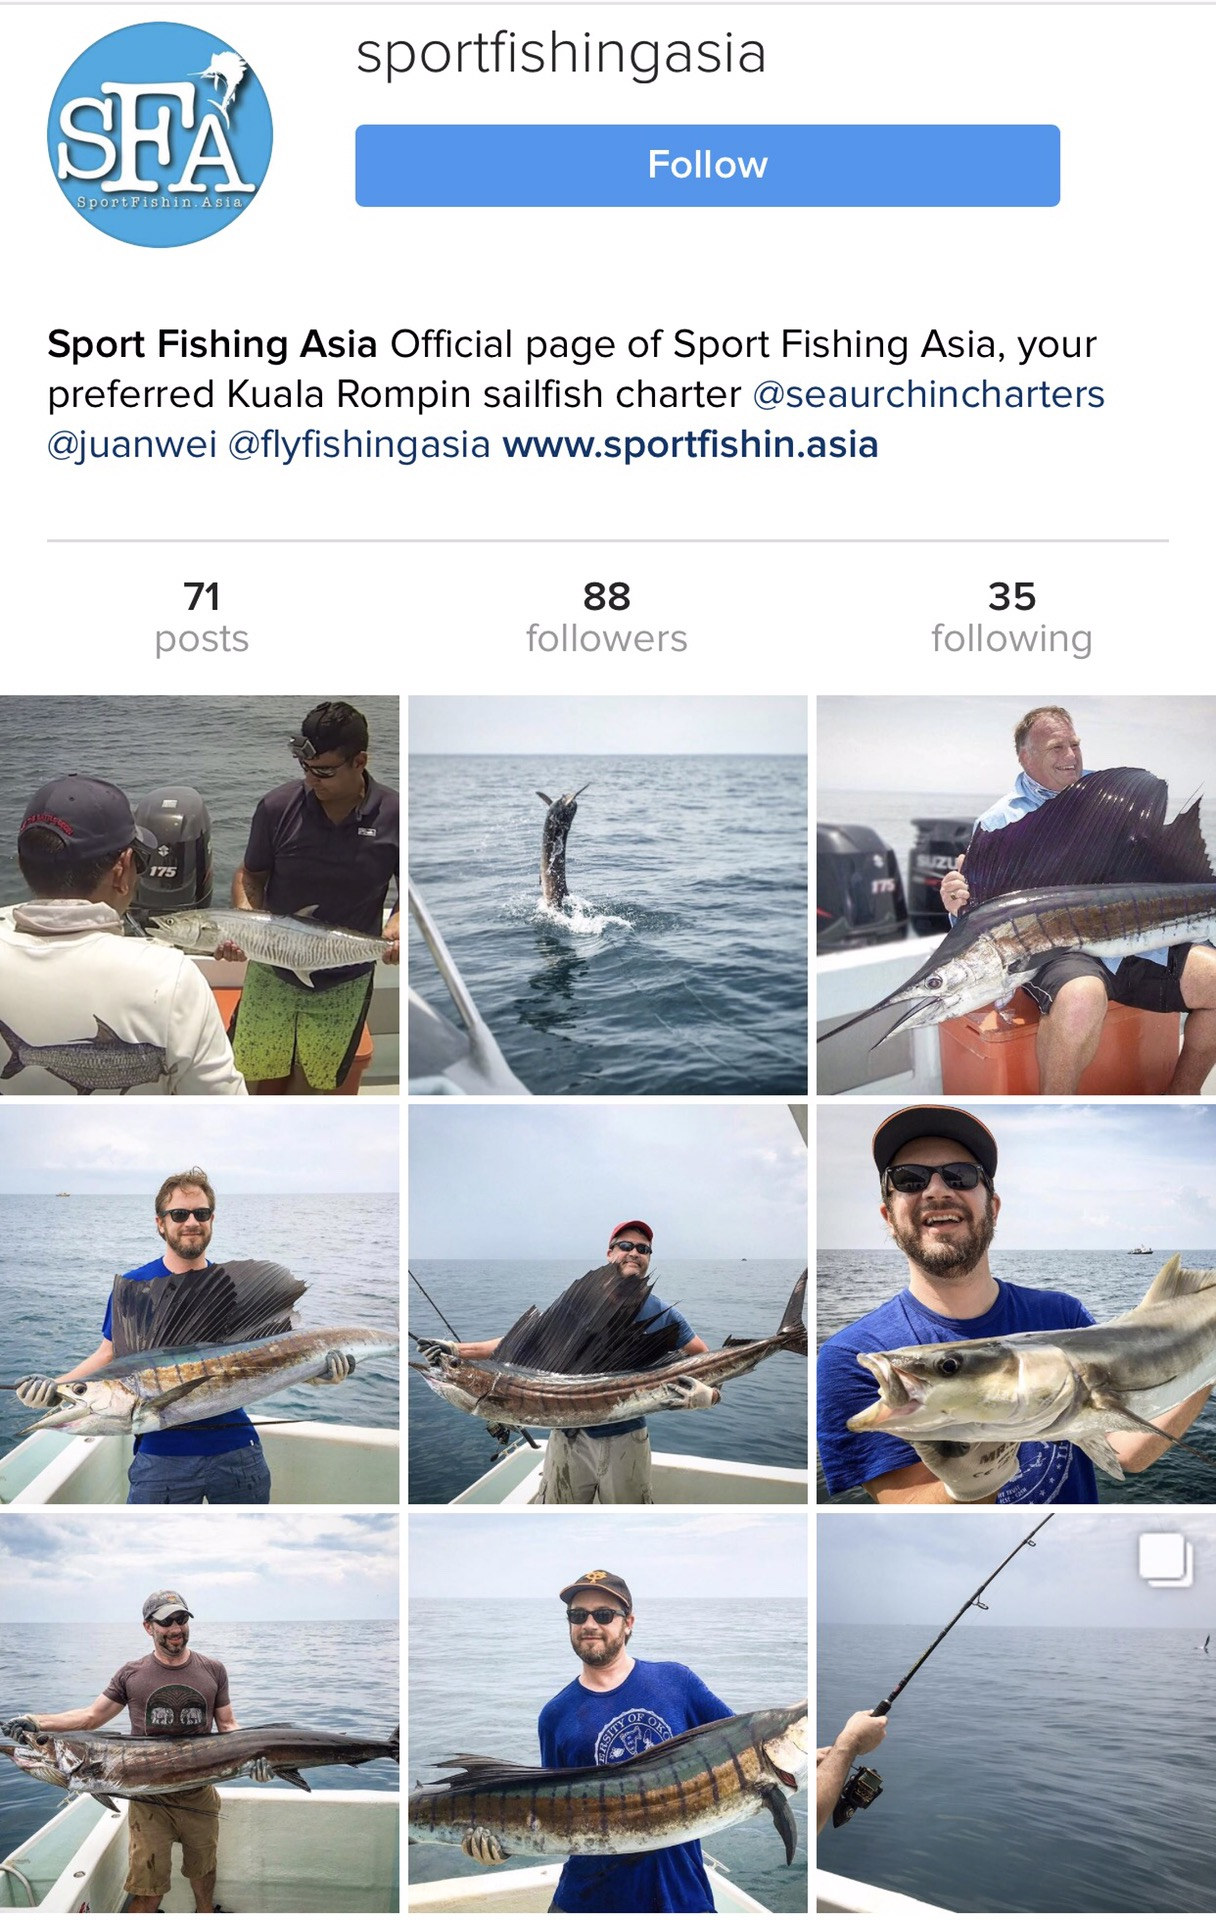 Sport Fishing Asia Instagram page